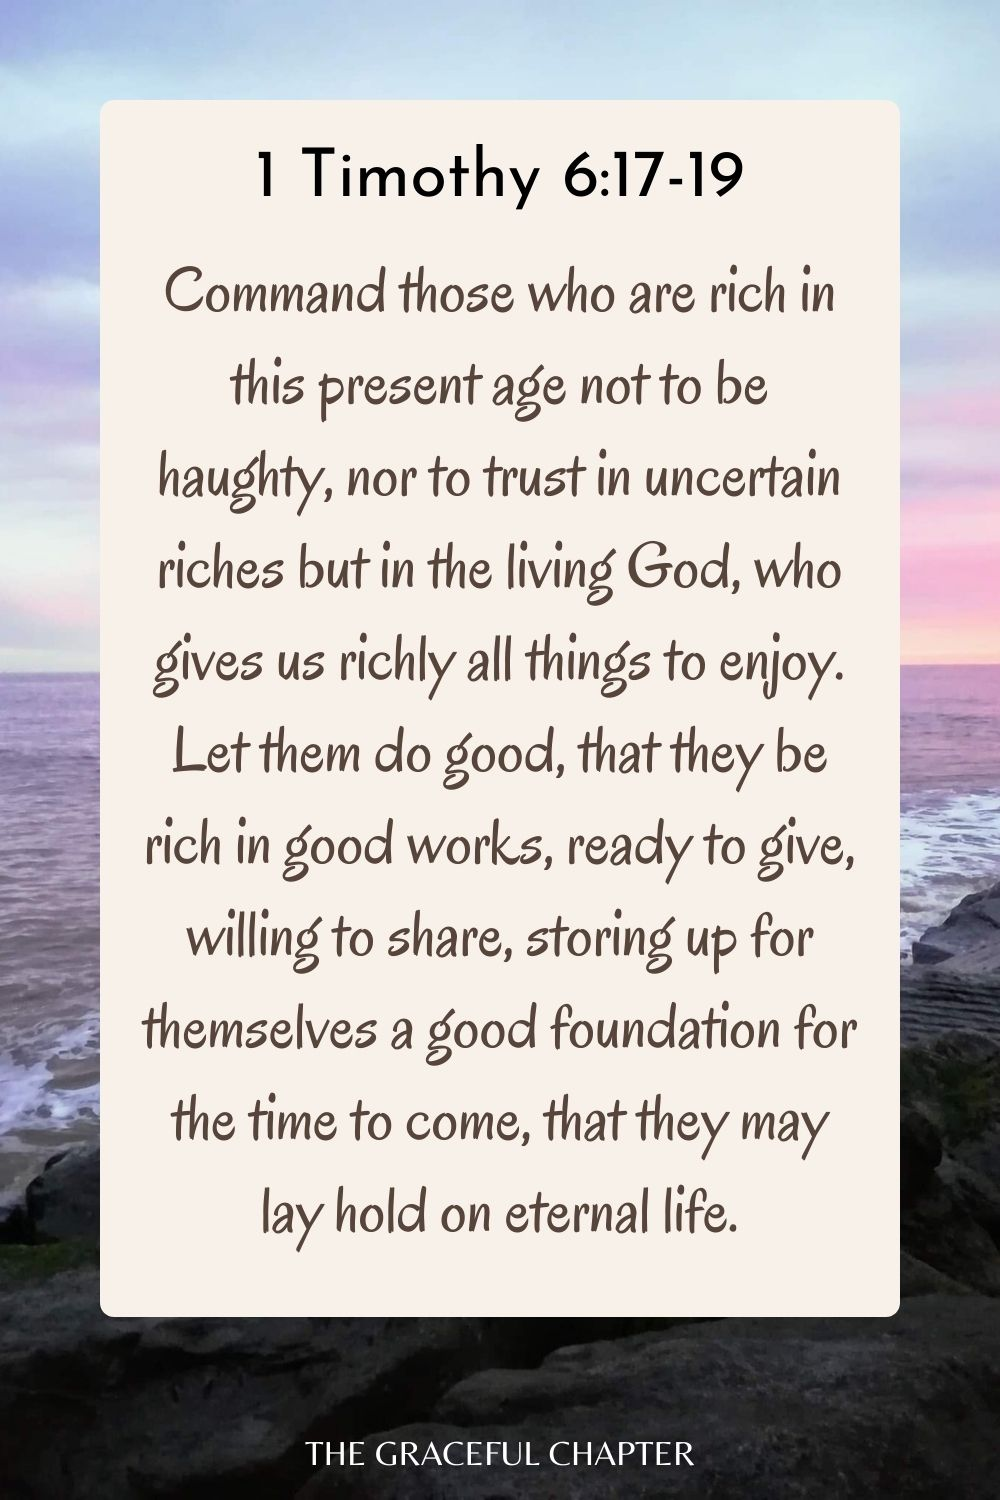 Command those who are rich in this present age not to be haughty, nor to trust in uncertain riches but in the living God, who gives us richly all things to enjoy.Let them do good, that they be rich in good works, ready to give, willing to share, storing up for themselves a good foundation for the time to come, that they may lay hold on eternal life. 1 Timothy 6:17-19